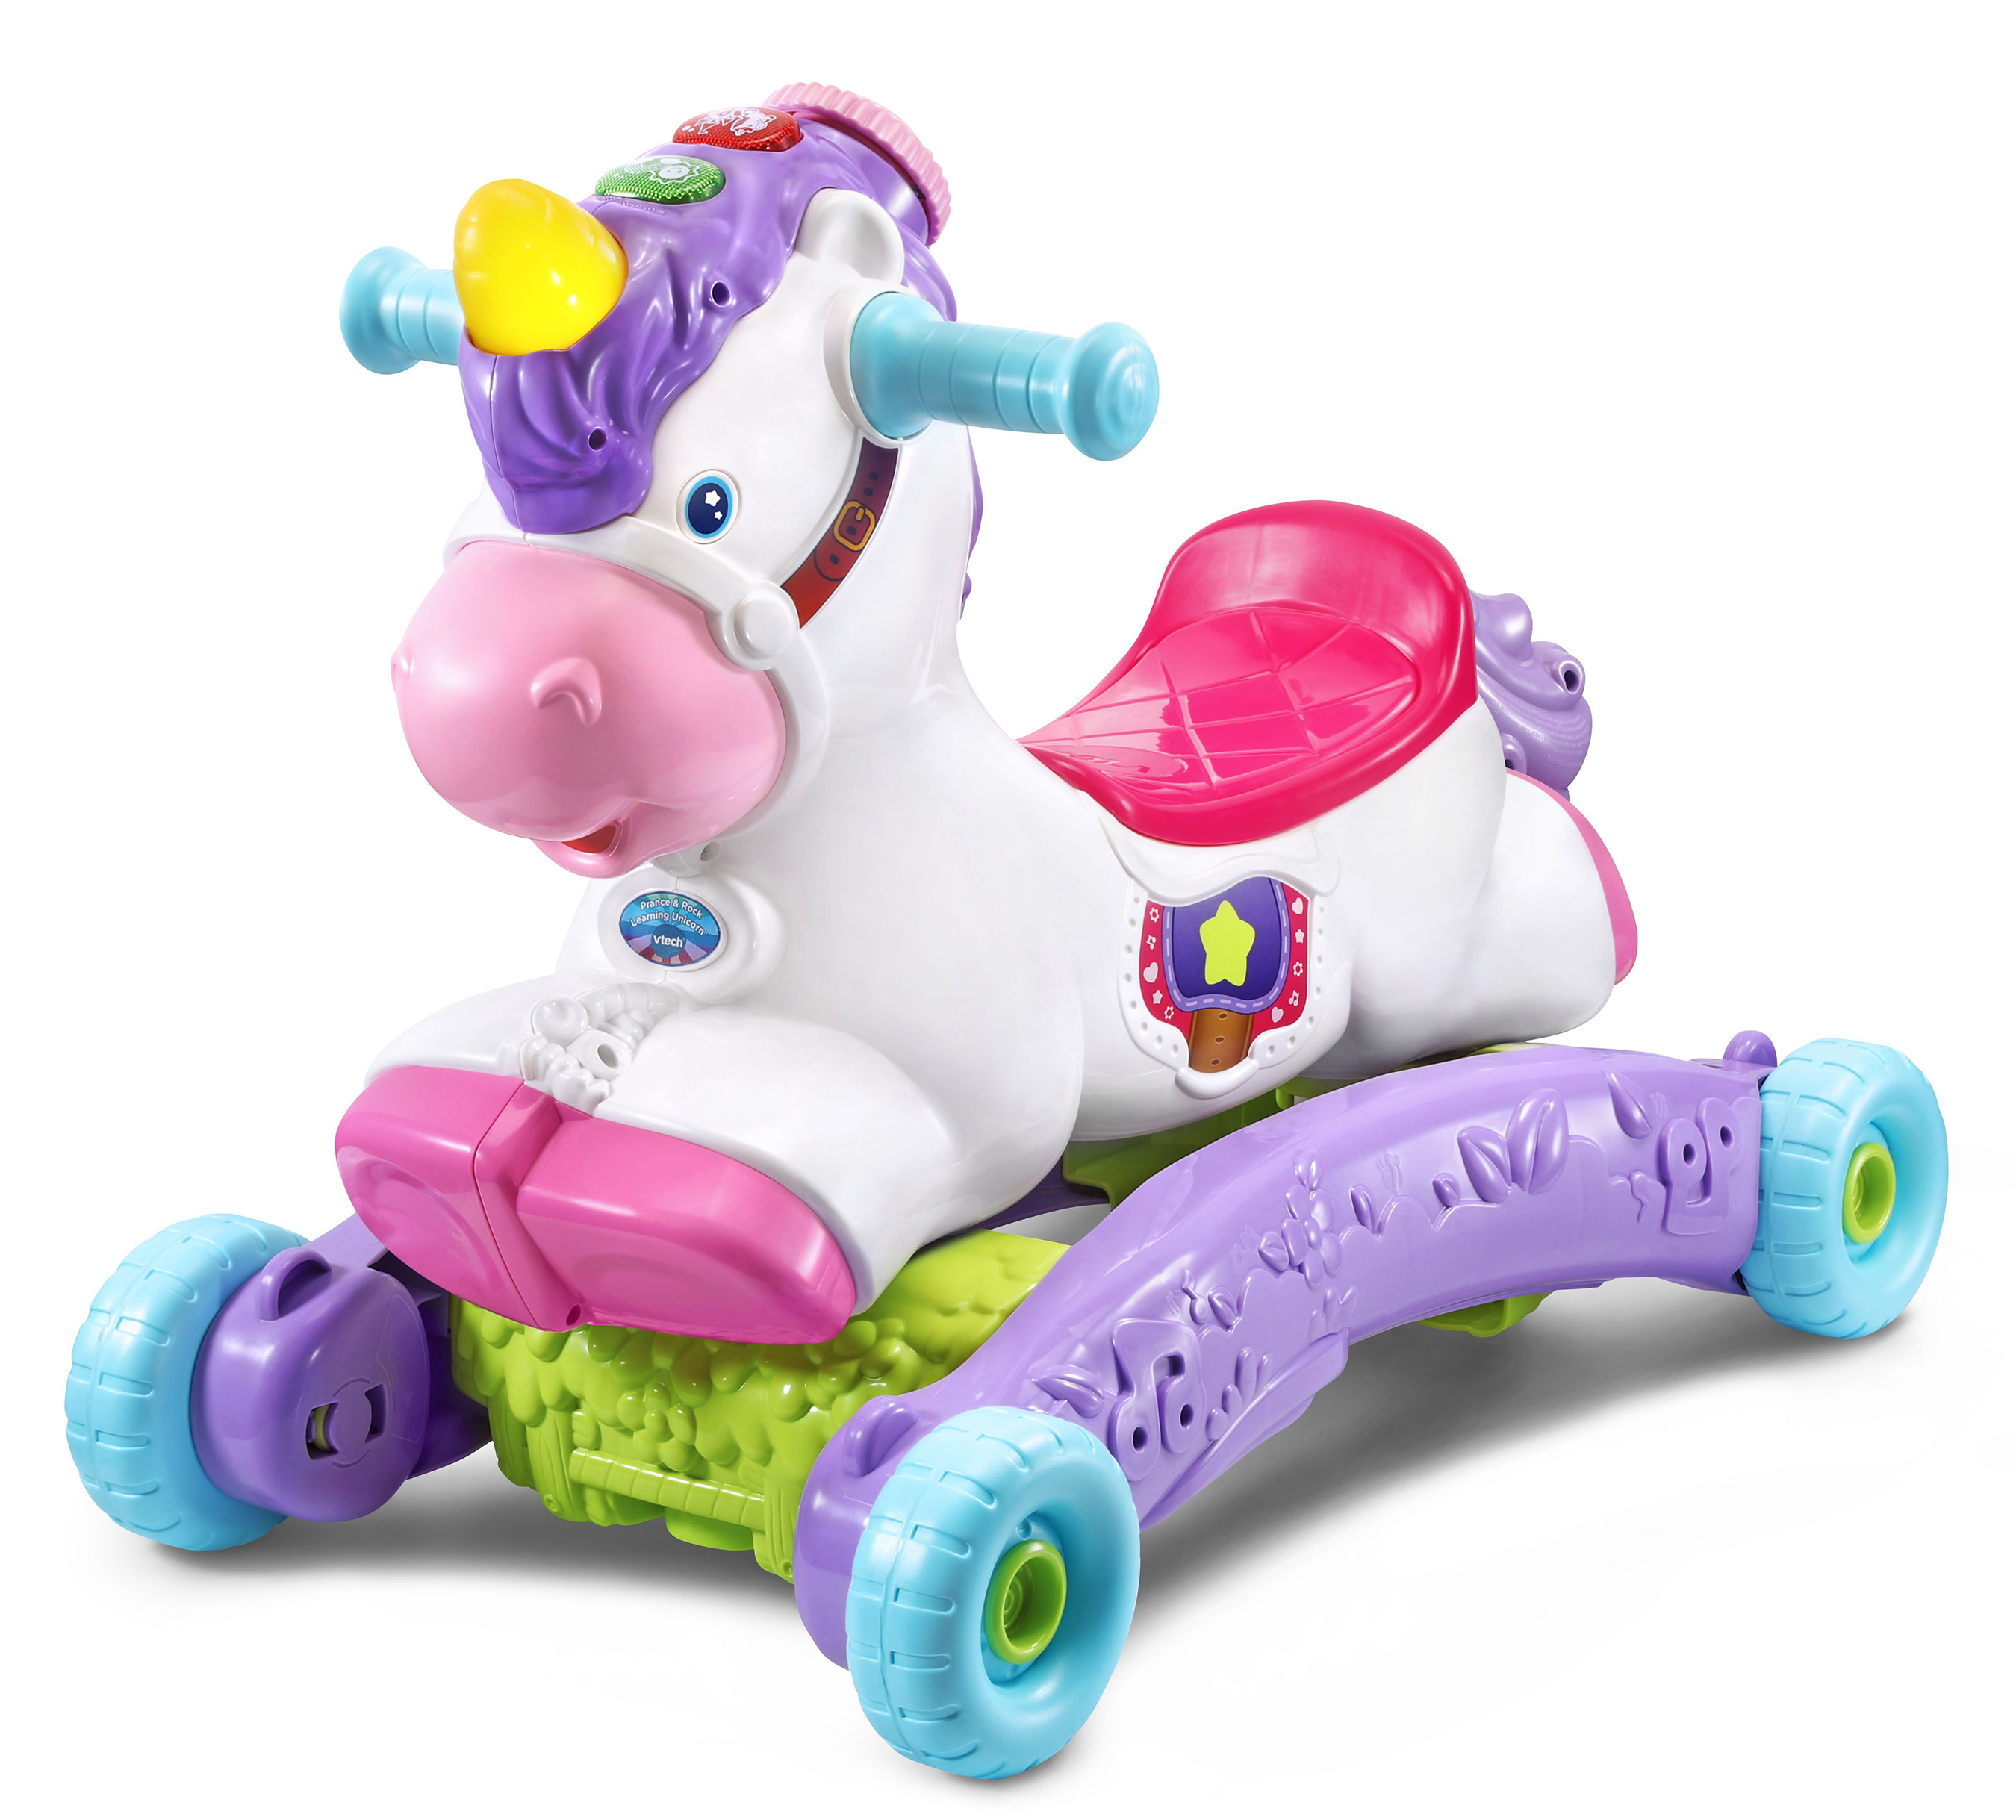 VTech® announces the availability of new infant, toddler and preschool toys, including the Prance & Rock Learning Unicorn™.